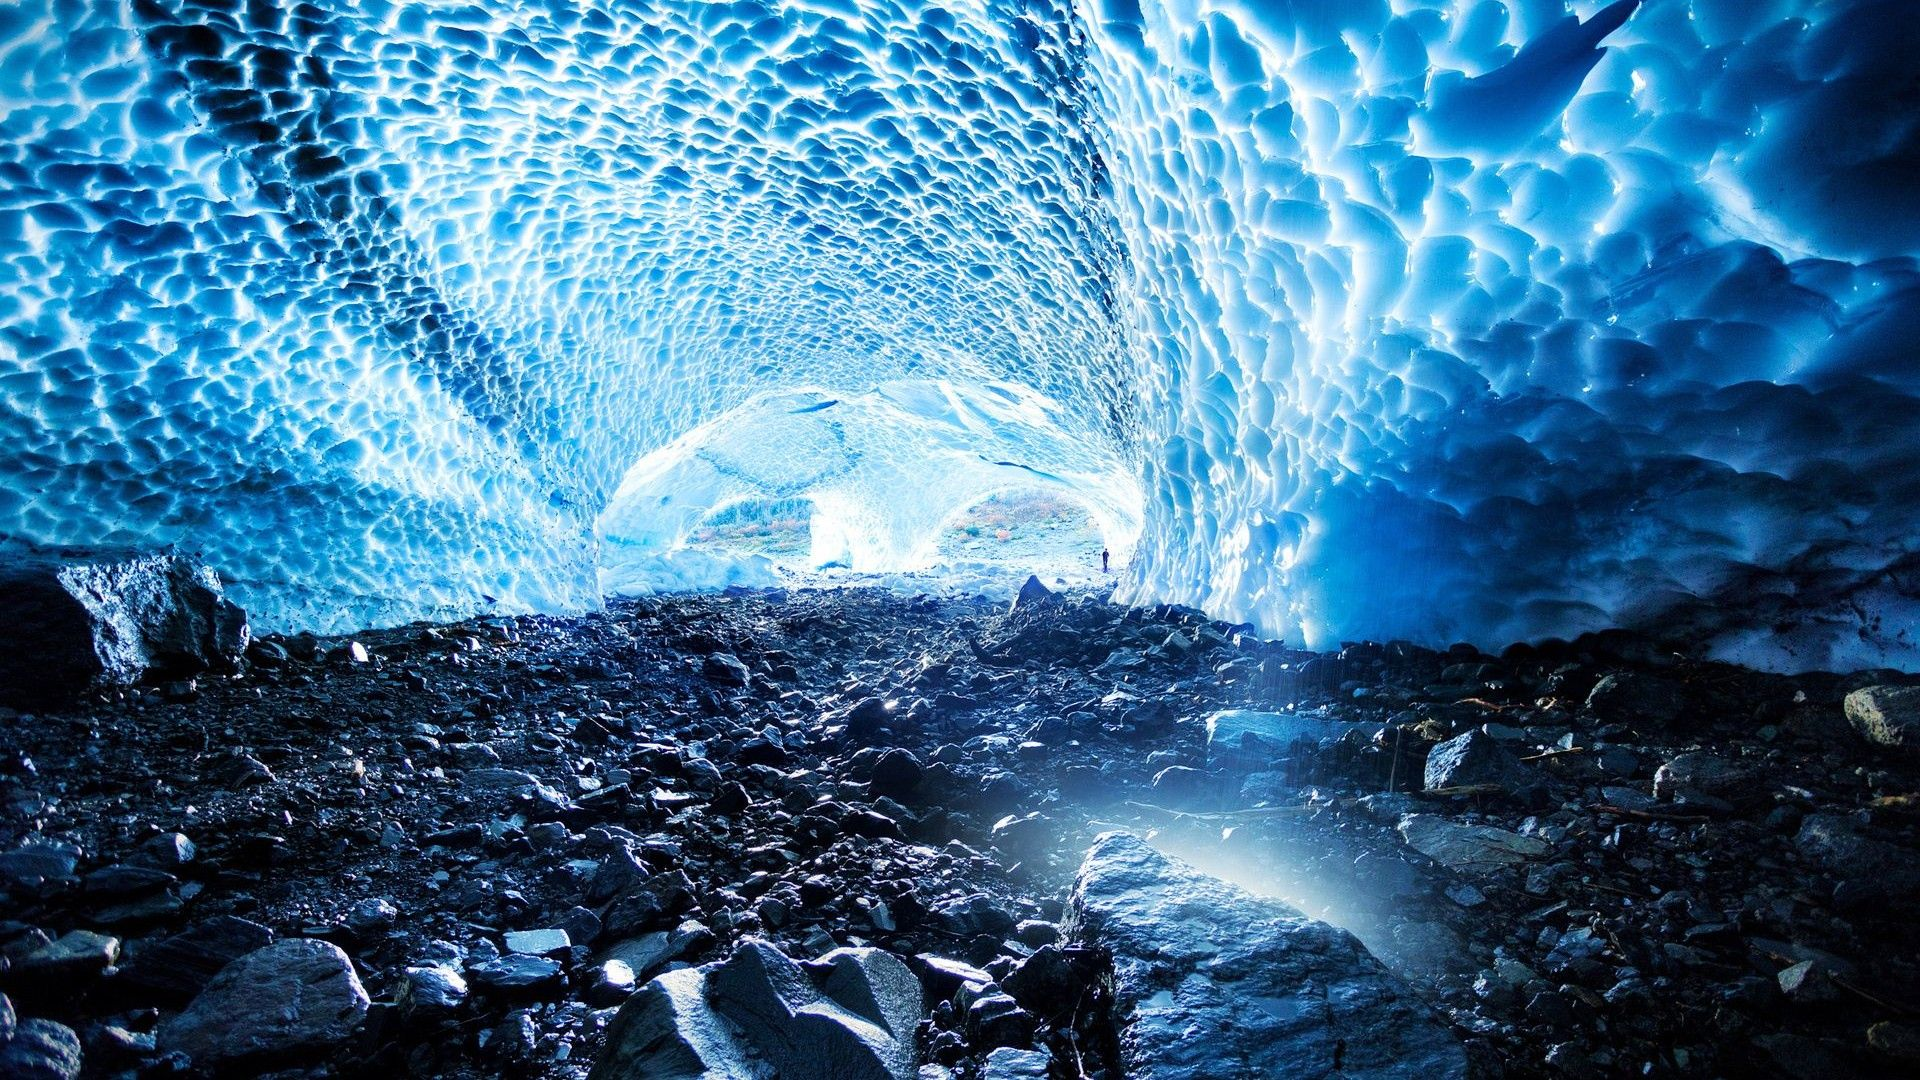 Ice Cave Washington | New wallpapers | Forest wallpaper ...